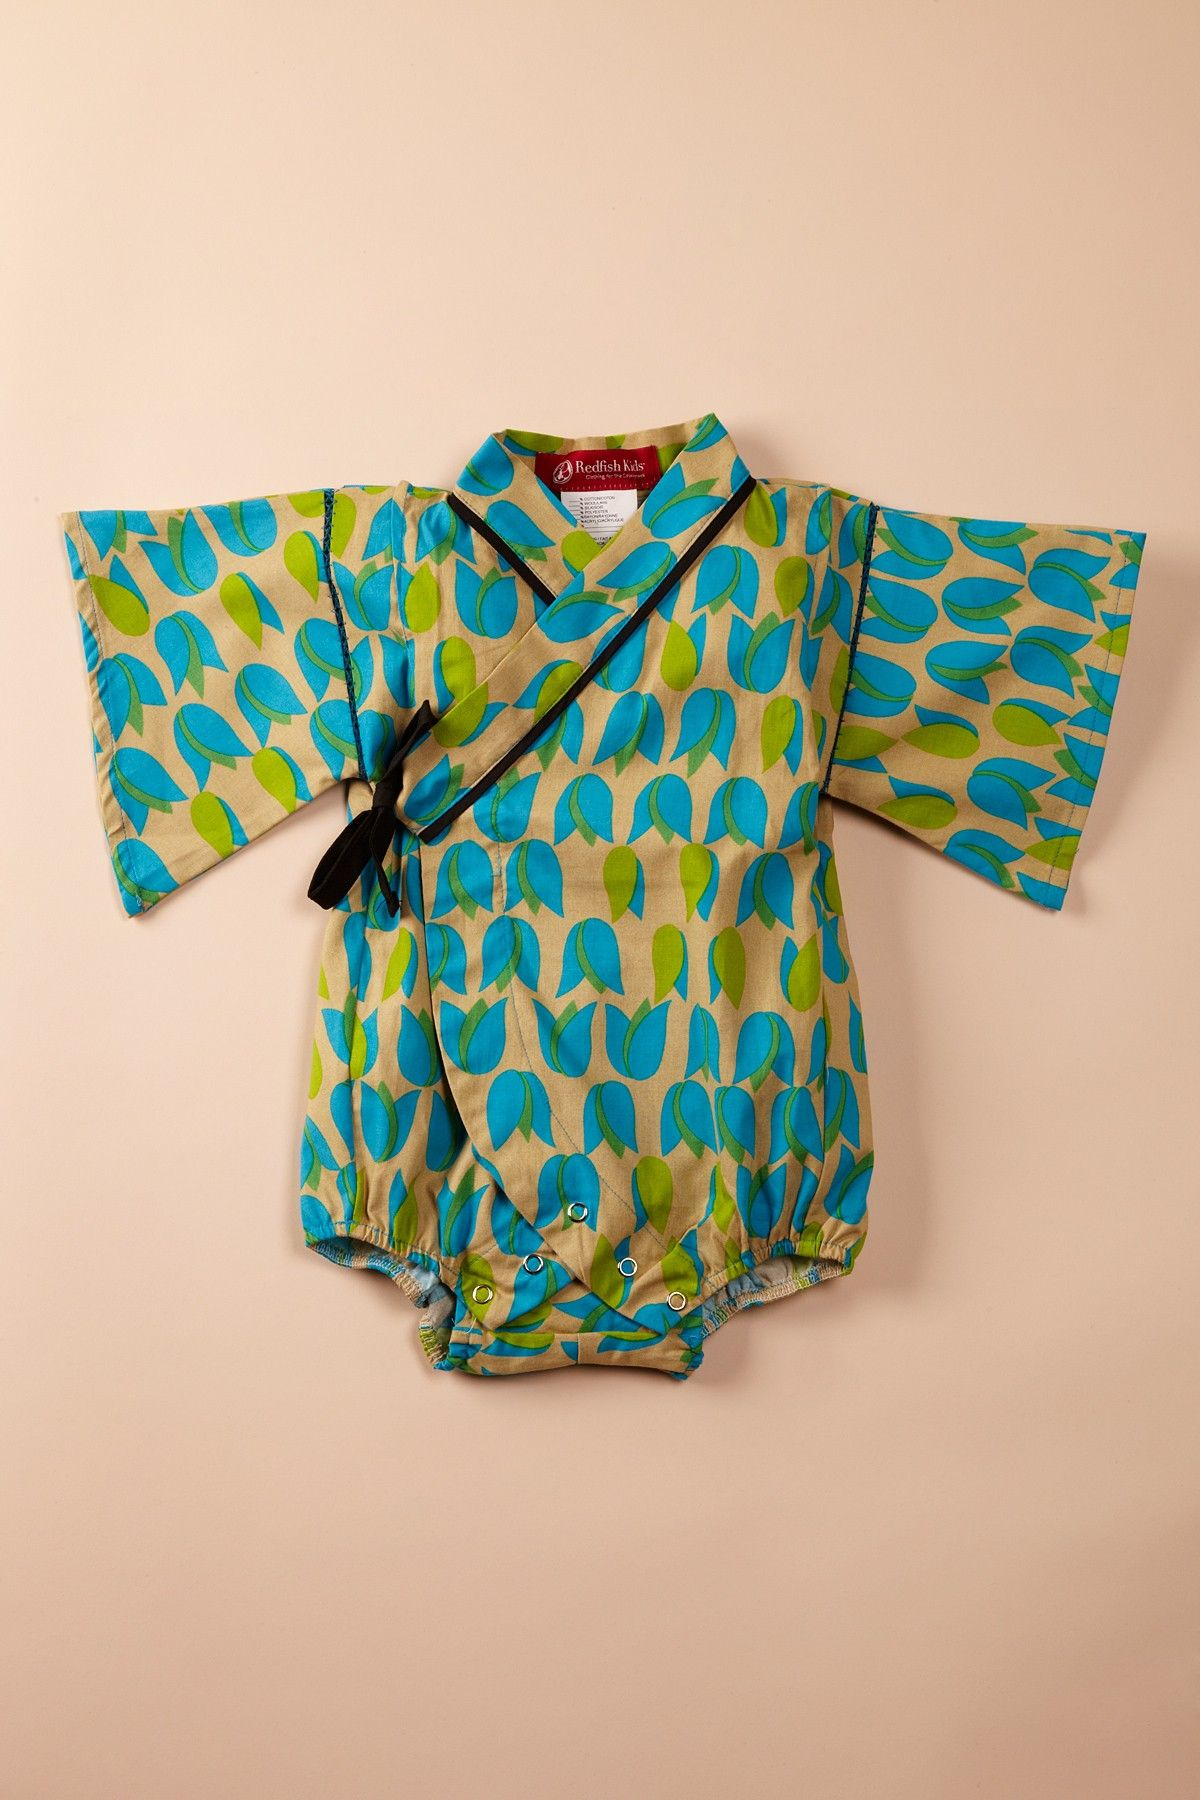 dd01855903d7 Baby Kimono...my goal is to find a pattern and/or make my own pattern so I  can make these!!